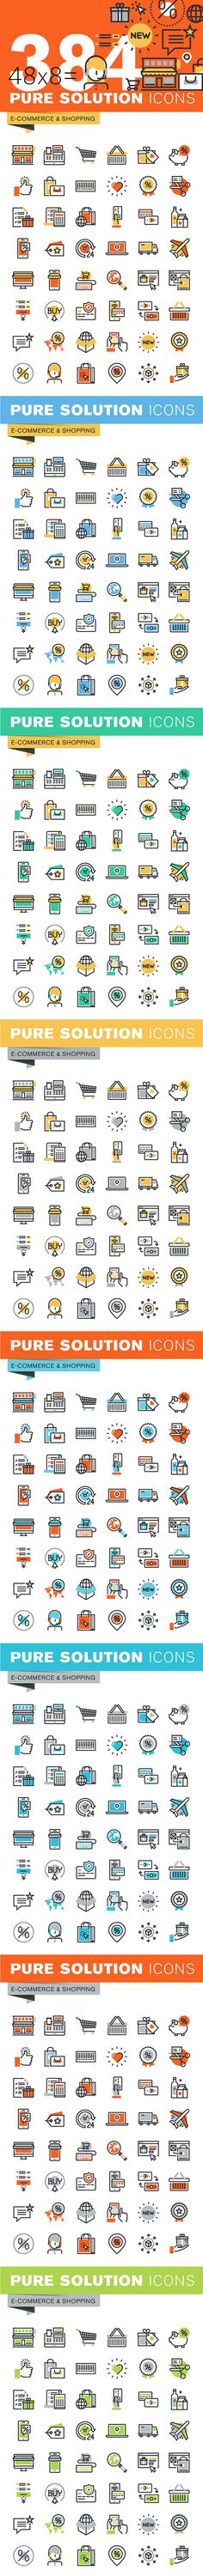 Set of Thin Line Icons of Shopping by PureSolution on @creativemarket